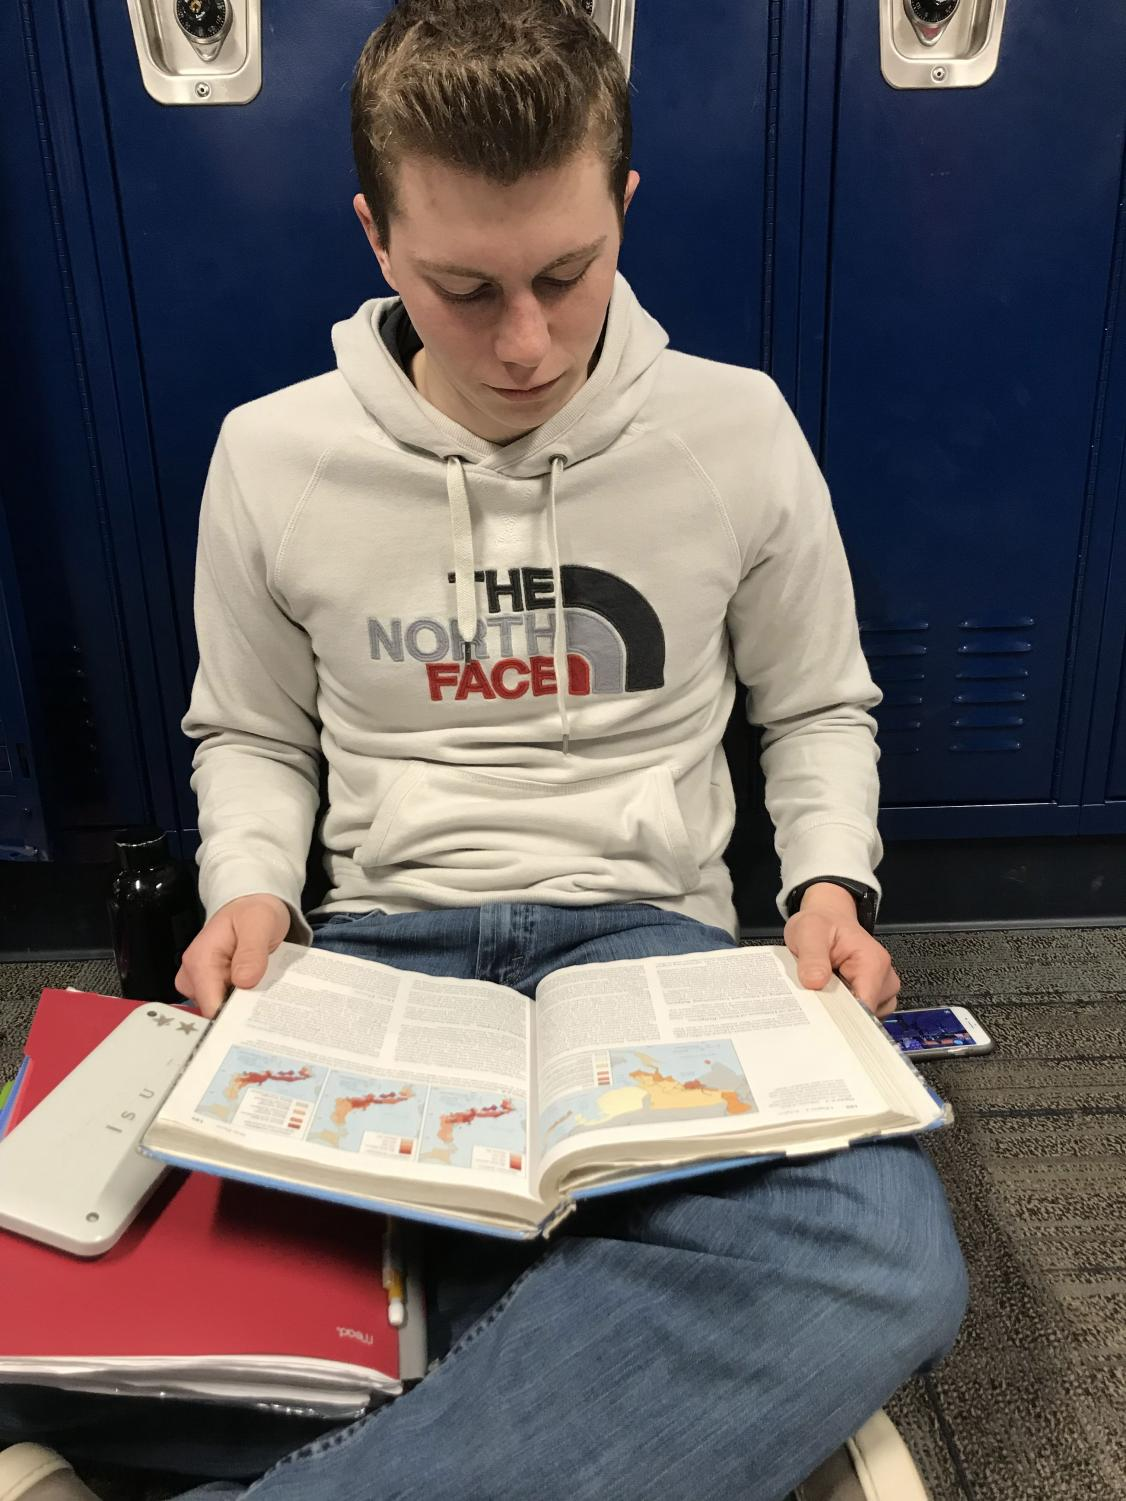 AP human geography student, Noah Streeter, reading the textbook to study for a test.